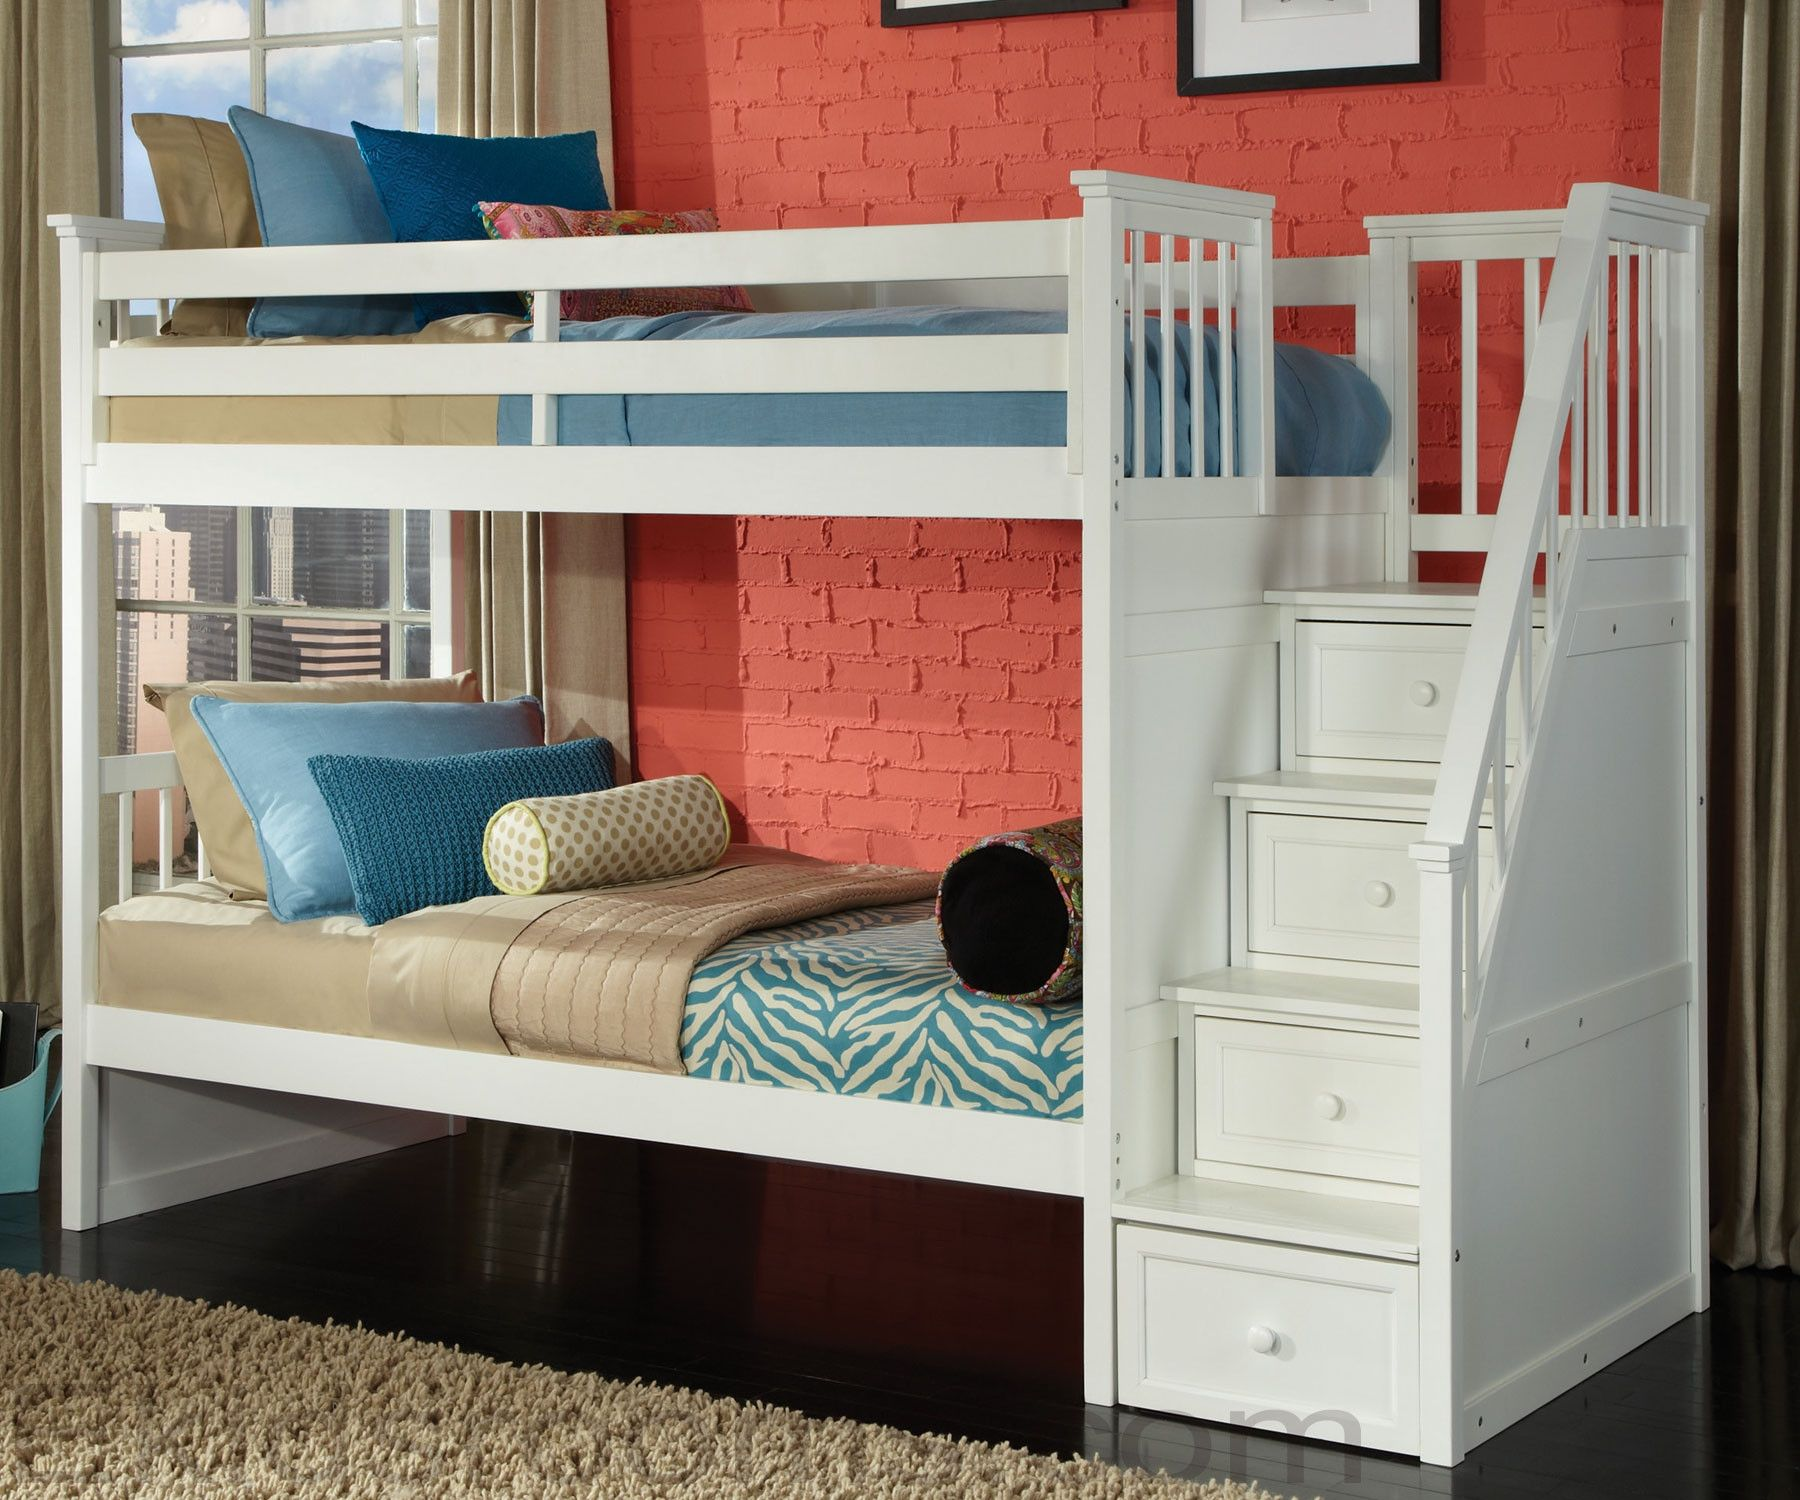 Loft Bed Playhouse Curtains | Bunk Bed Tents | Bunk Bed Curtains